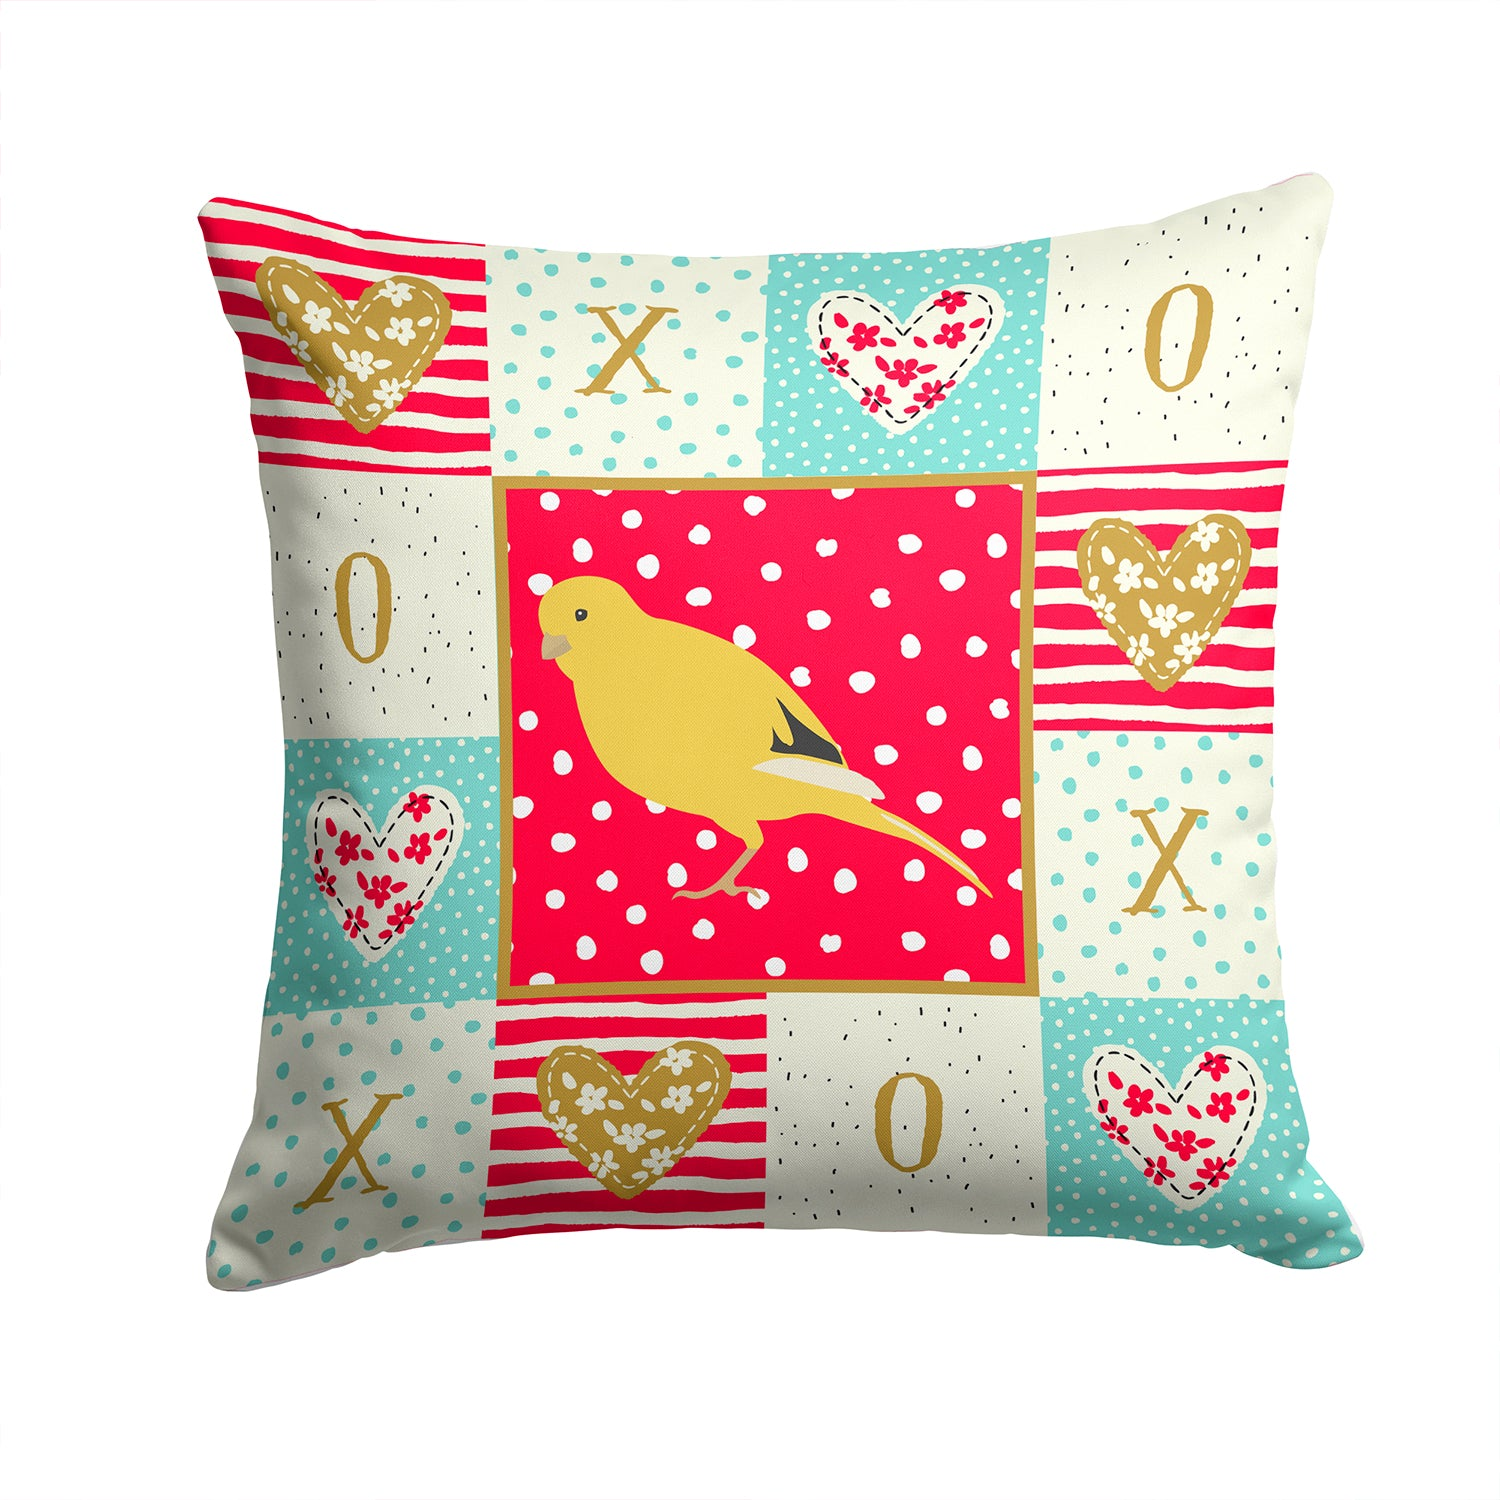 Border Canary Love Fabric Decorative Pillow CK5501PW1414 by Caroline's Treasures